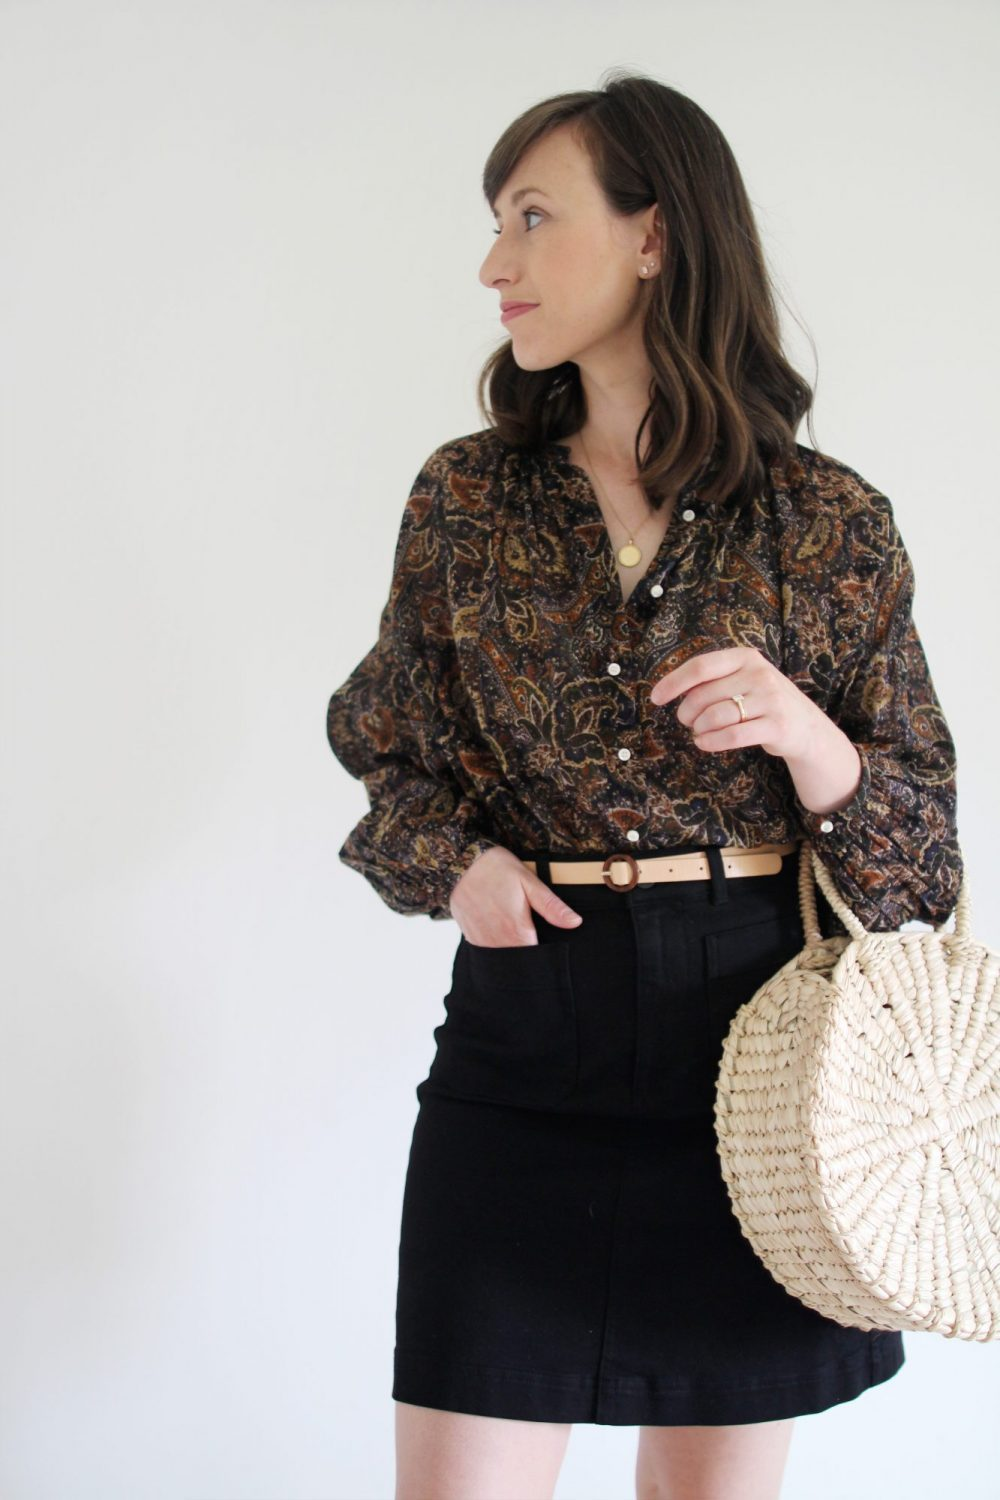 August Outfits - Look 2 - Paisley Blouse + Black Mini Skirt + Nude Belt + Clogs + Woven Circle Tote